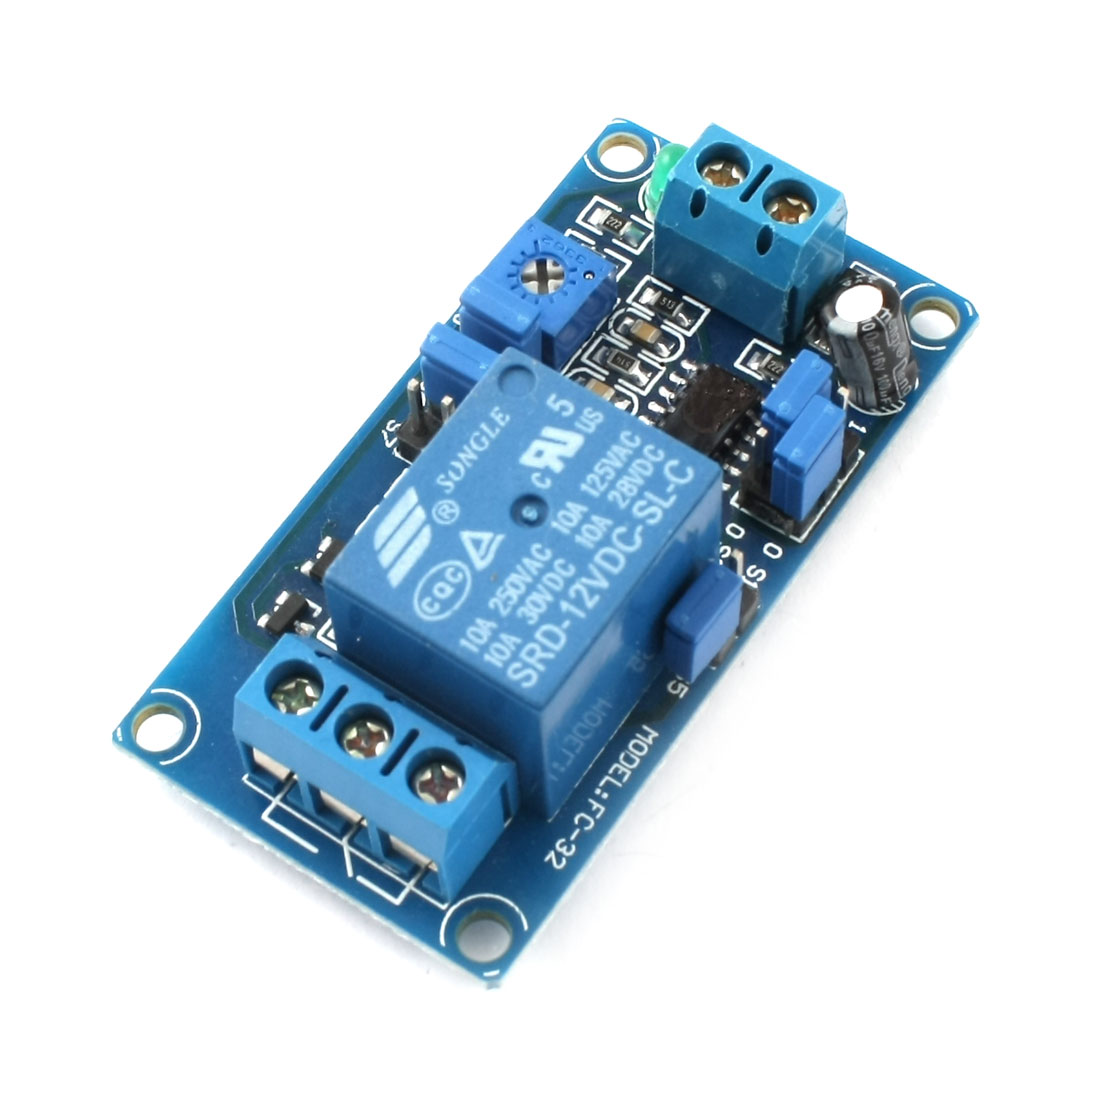 SRD-12VDC-SL-C 1 Way Low Level Trigger Adjustable Delay Time Relay Module DC12V 10A